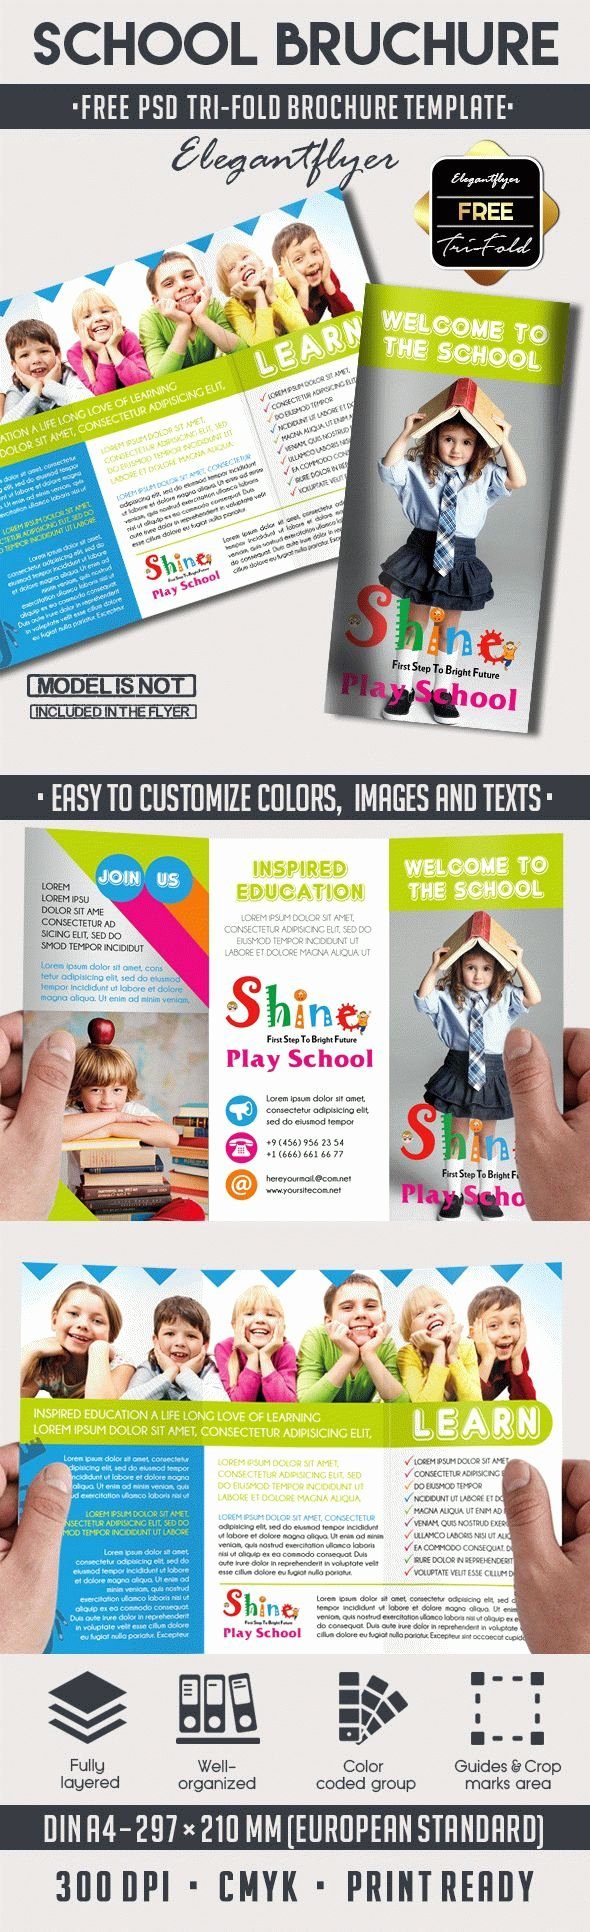 Tri Fold Brochure Psd Template Luxury School – Free Psd Tri Fold Psd Brochure Template – by Elegantflyer